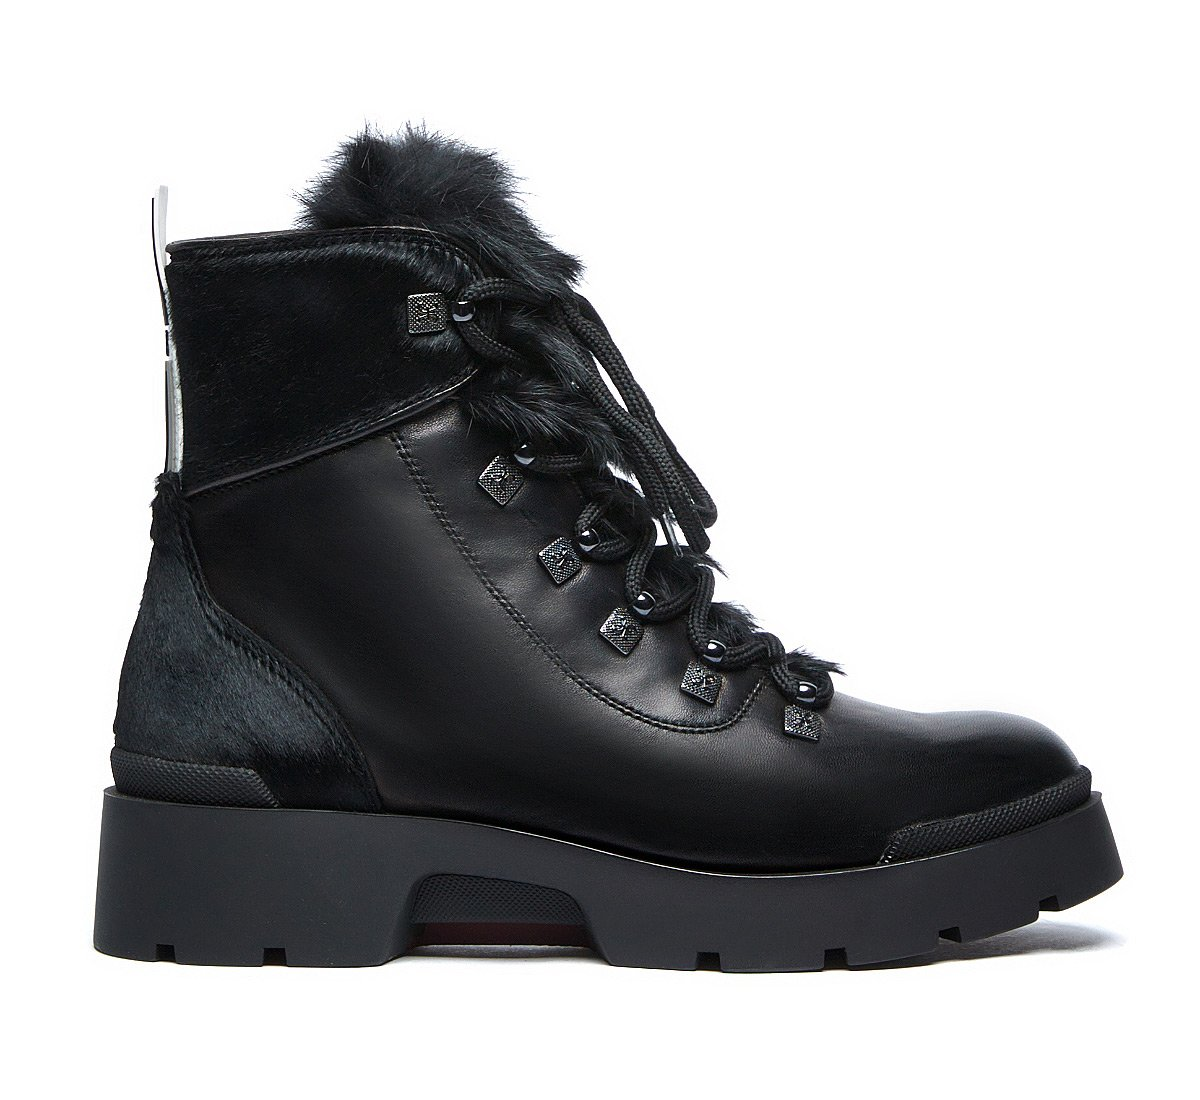 Fabi commando boots in luxury calf leather